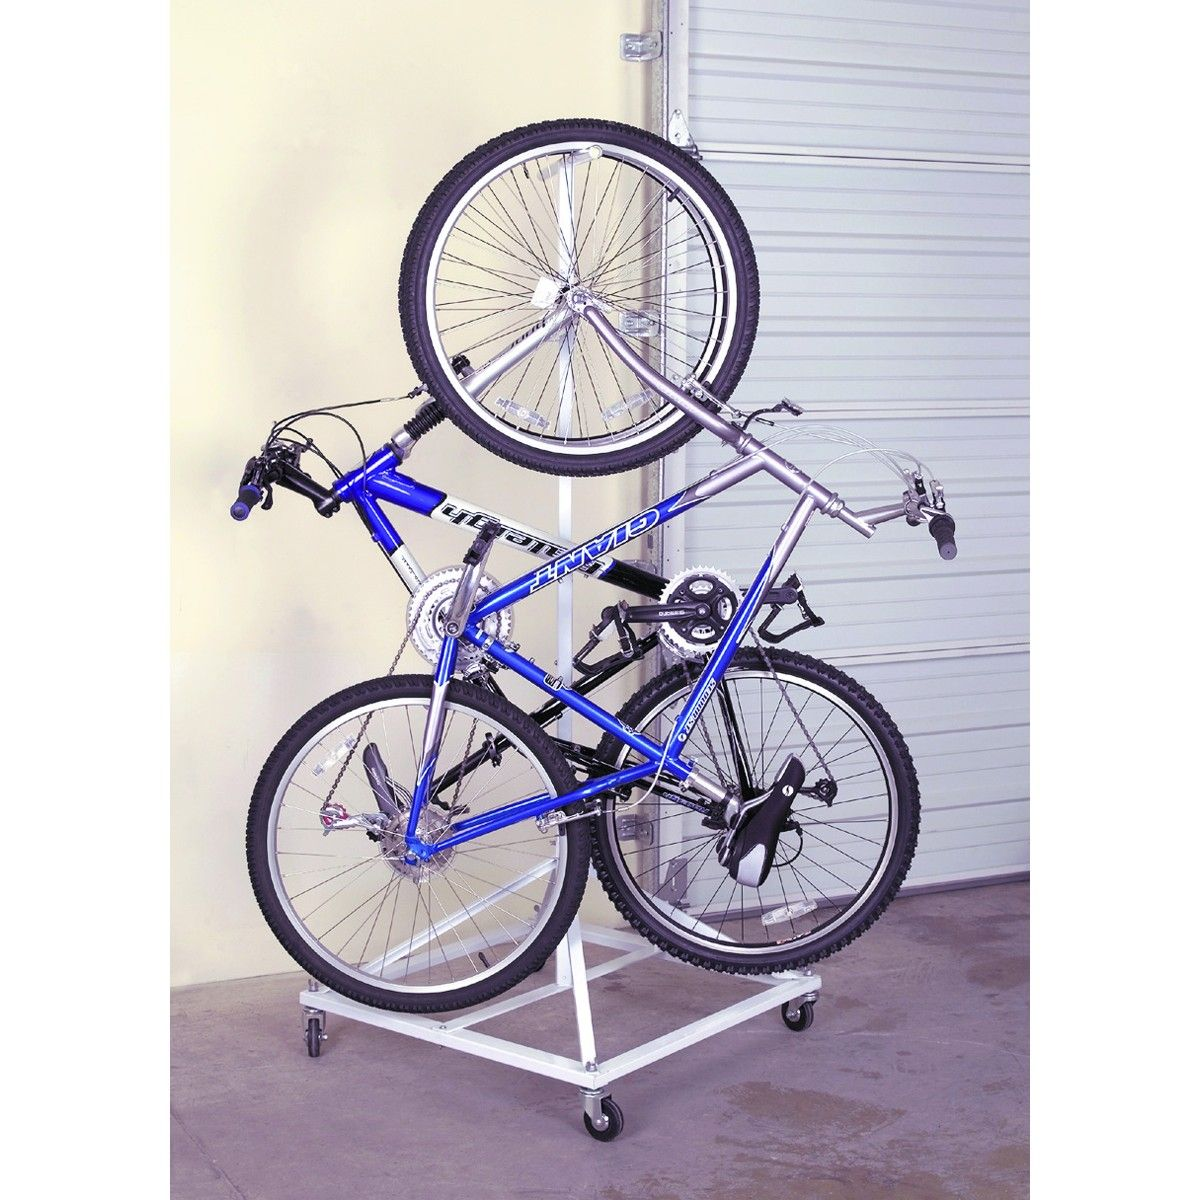 Cycle Tree Compact Bike Storage $49.99